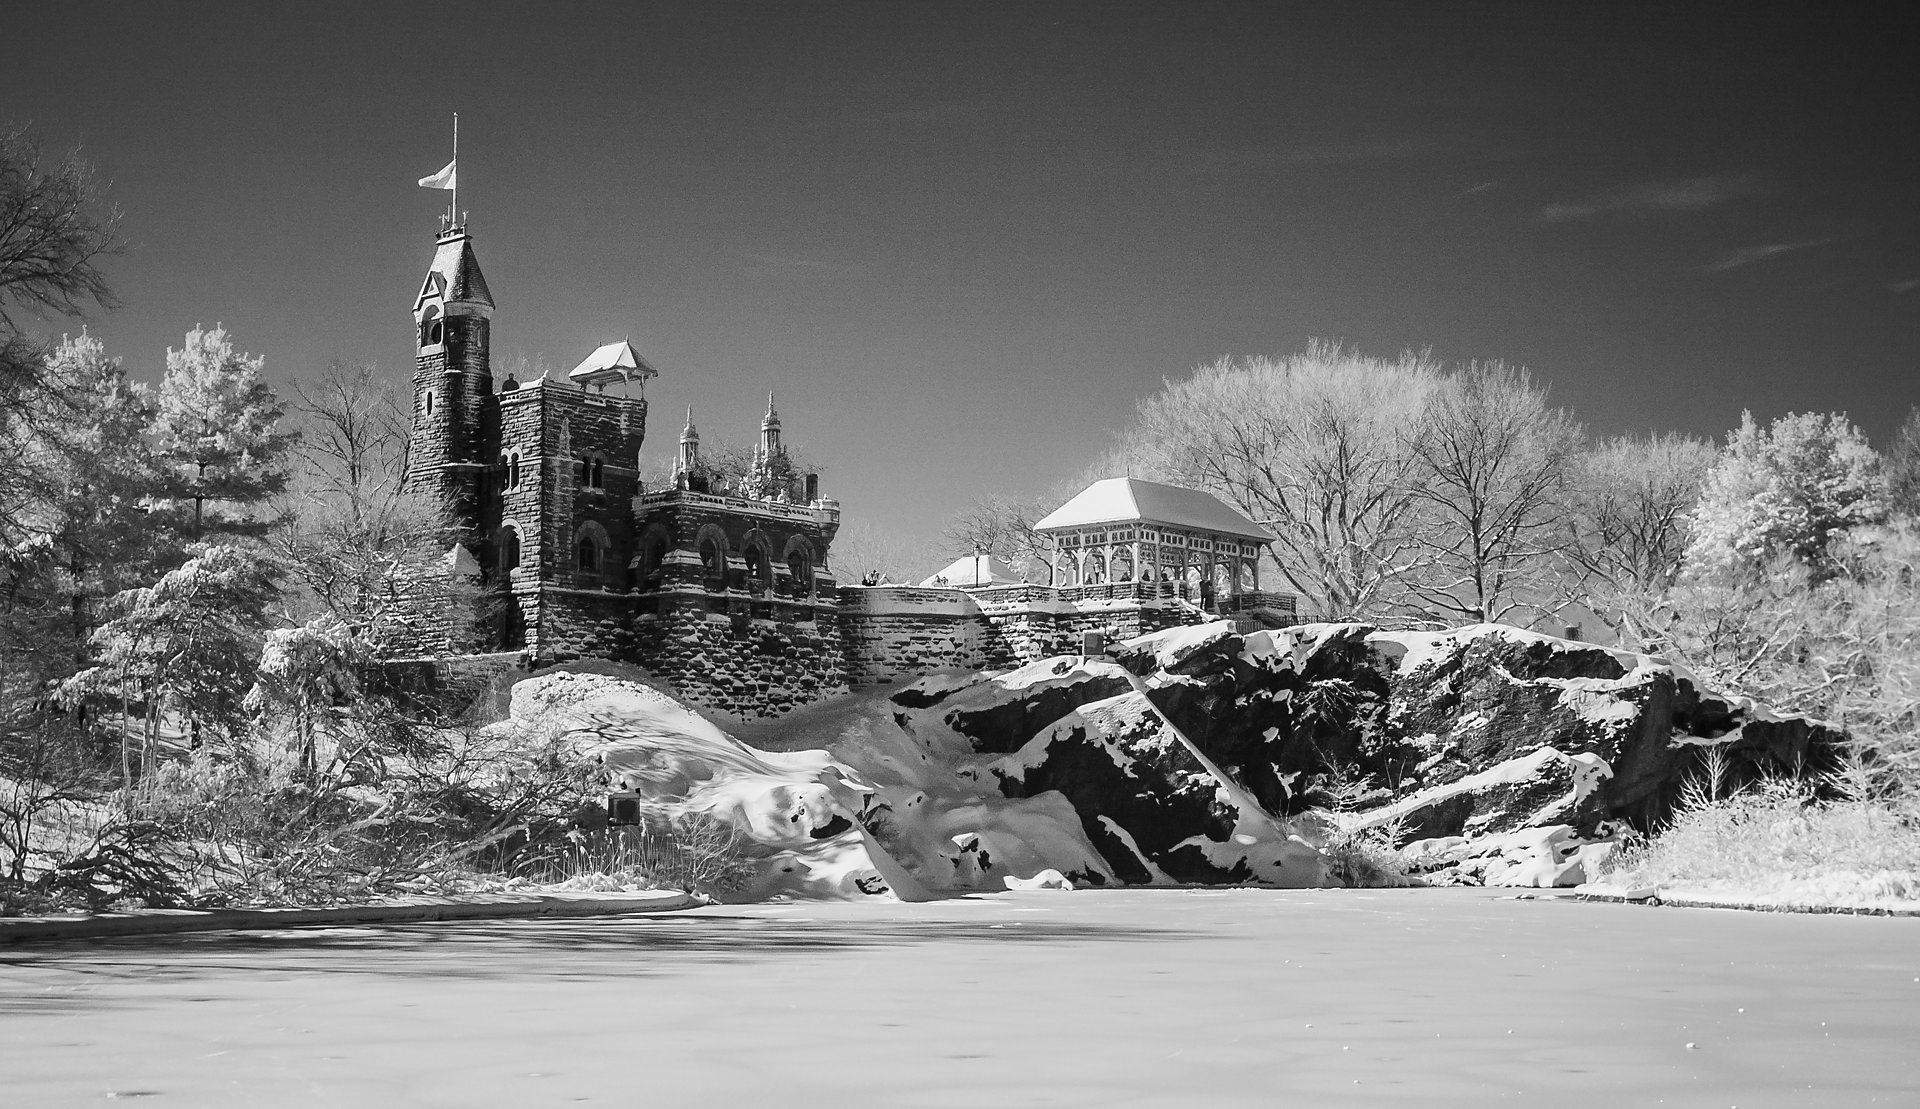 Belvedere Castle, Winter Storm Nemo 2013